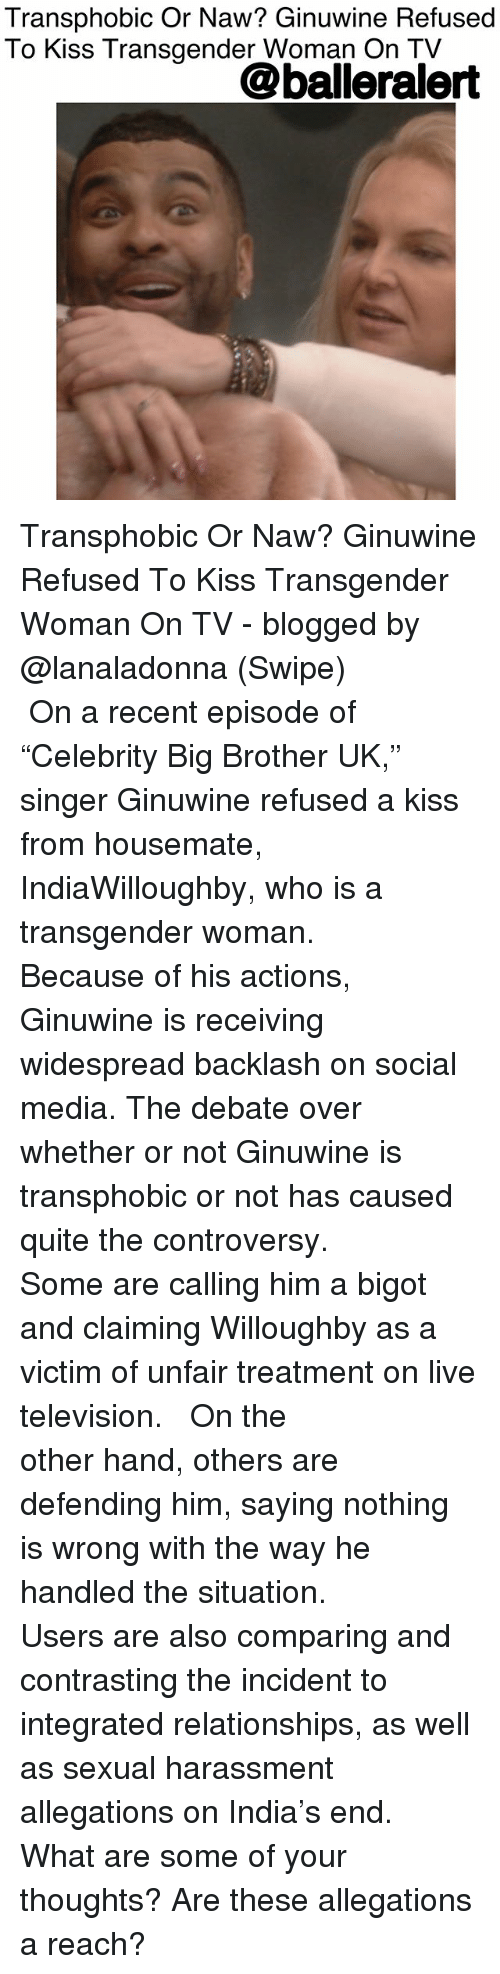 "Memes, Relationships, and Social Media: Transphobic Or Naw? Ginuwine Refused  To Kiss Transgender Woman On TV  @balleralert Transphobic Or Naw? Ginuwine Refused To Kiss Transgender Woman On TV - blogged by @lanaladonna (Swipe) ⠀⠀⠀⠀⠀⠀⠀ ⠀⠀⠀⠀⠀⠀⠀ On a recent episode of ""Celebrity Big Brother UK,"" singer Ginuwine refused a kiss from housemate, IndiaWilloughby, who is a transgender woman. ⠀⠀⠀⠀⠀⠀⠀ ⠀⠀⠀⠀⠀⠀⠀ Because of his actions, Ginuwine is receiving widespread backlash on social media. The debate over whether or not Ginuwine is transphobic or not has caused quite the controversy. ⠀⠀⠀⠀⠀⠀⠀ ⠀⠀⠀⠀⠀⠀⠀ Some are calling him a bigot and claiming Willoughby as a victim of unfair treatment on live television. ⠀⠀⠀⠀⠀⠀⠀ ⠀⠀⠀⠀⠀⠀⠀ On the other hand, others are defending him, saying nothing is wrong with the way he handled the situation. ⠀⠀⠀⠀⠀⠀⠀ ⠀⠀⠀⠀⠀⠀⠀ Users are also comparing and contrasting the incident to integrated relationships, as well as sexual harassment allegations on India's end. ⠀⠀⠀⠀⠀⠀⠀ What are some of your thoughts? Are these allegations a reach?"